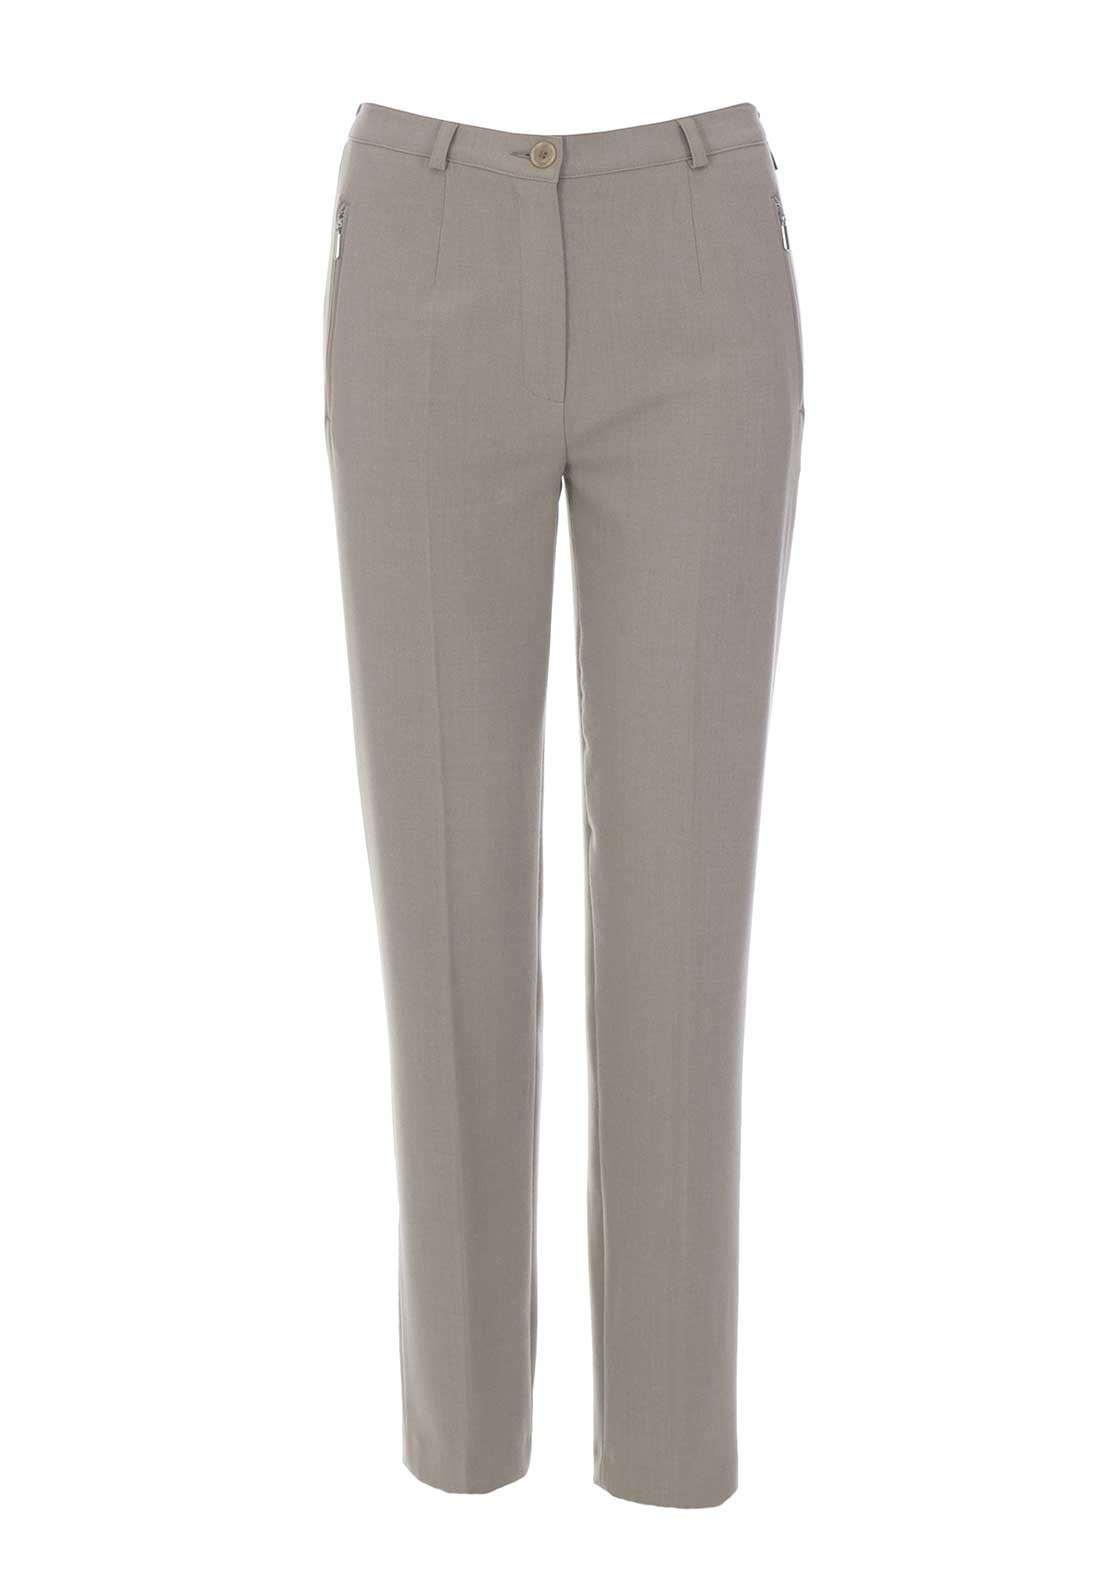 Robell Sahra Comfort Fit Straight Leg Trousers, Beige